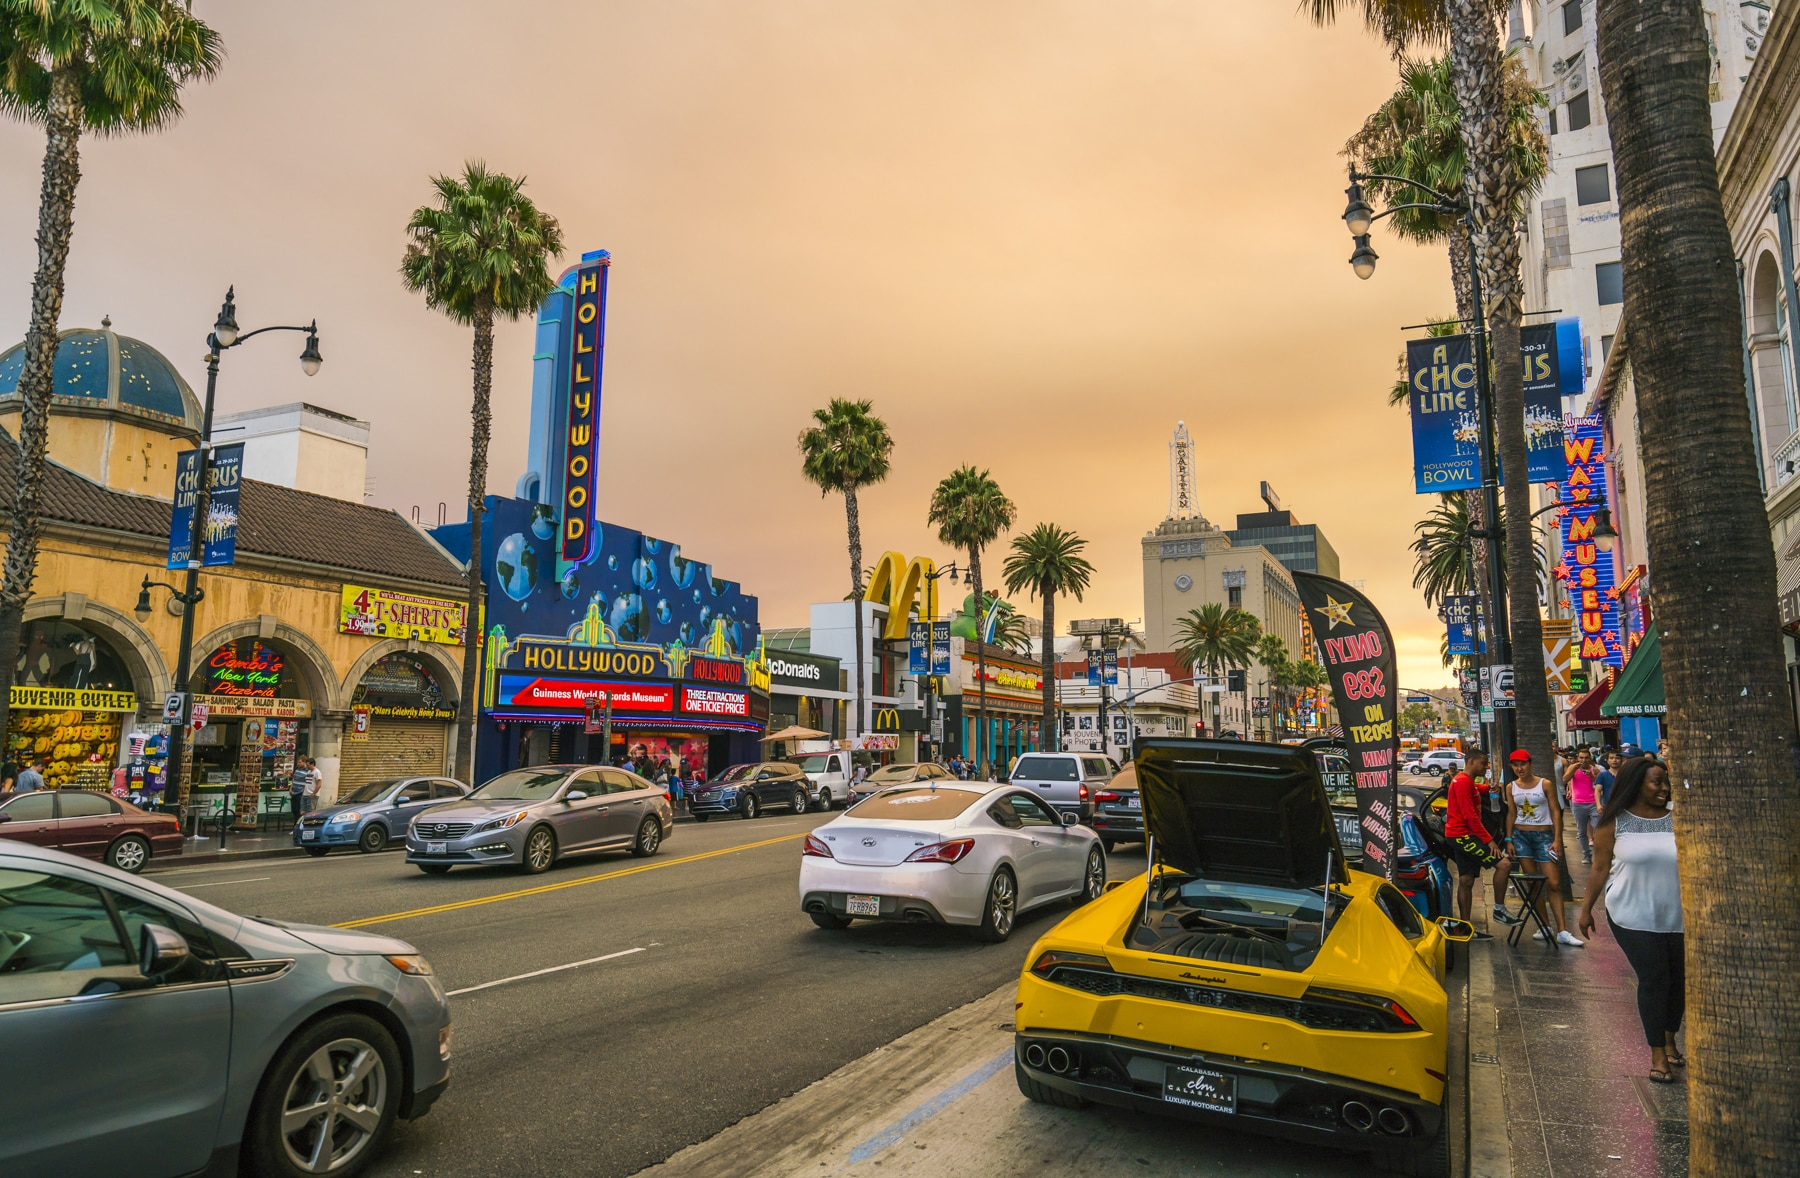 Cars driving down street lined with palm trees and brightly lit stores (Shutterstock)